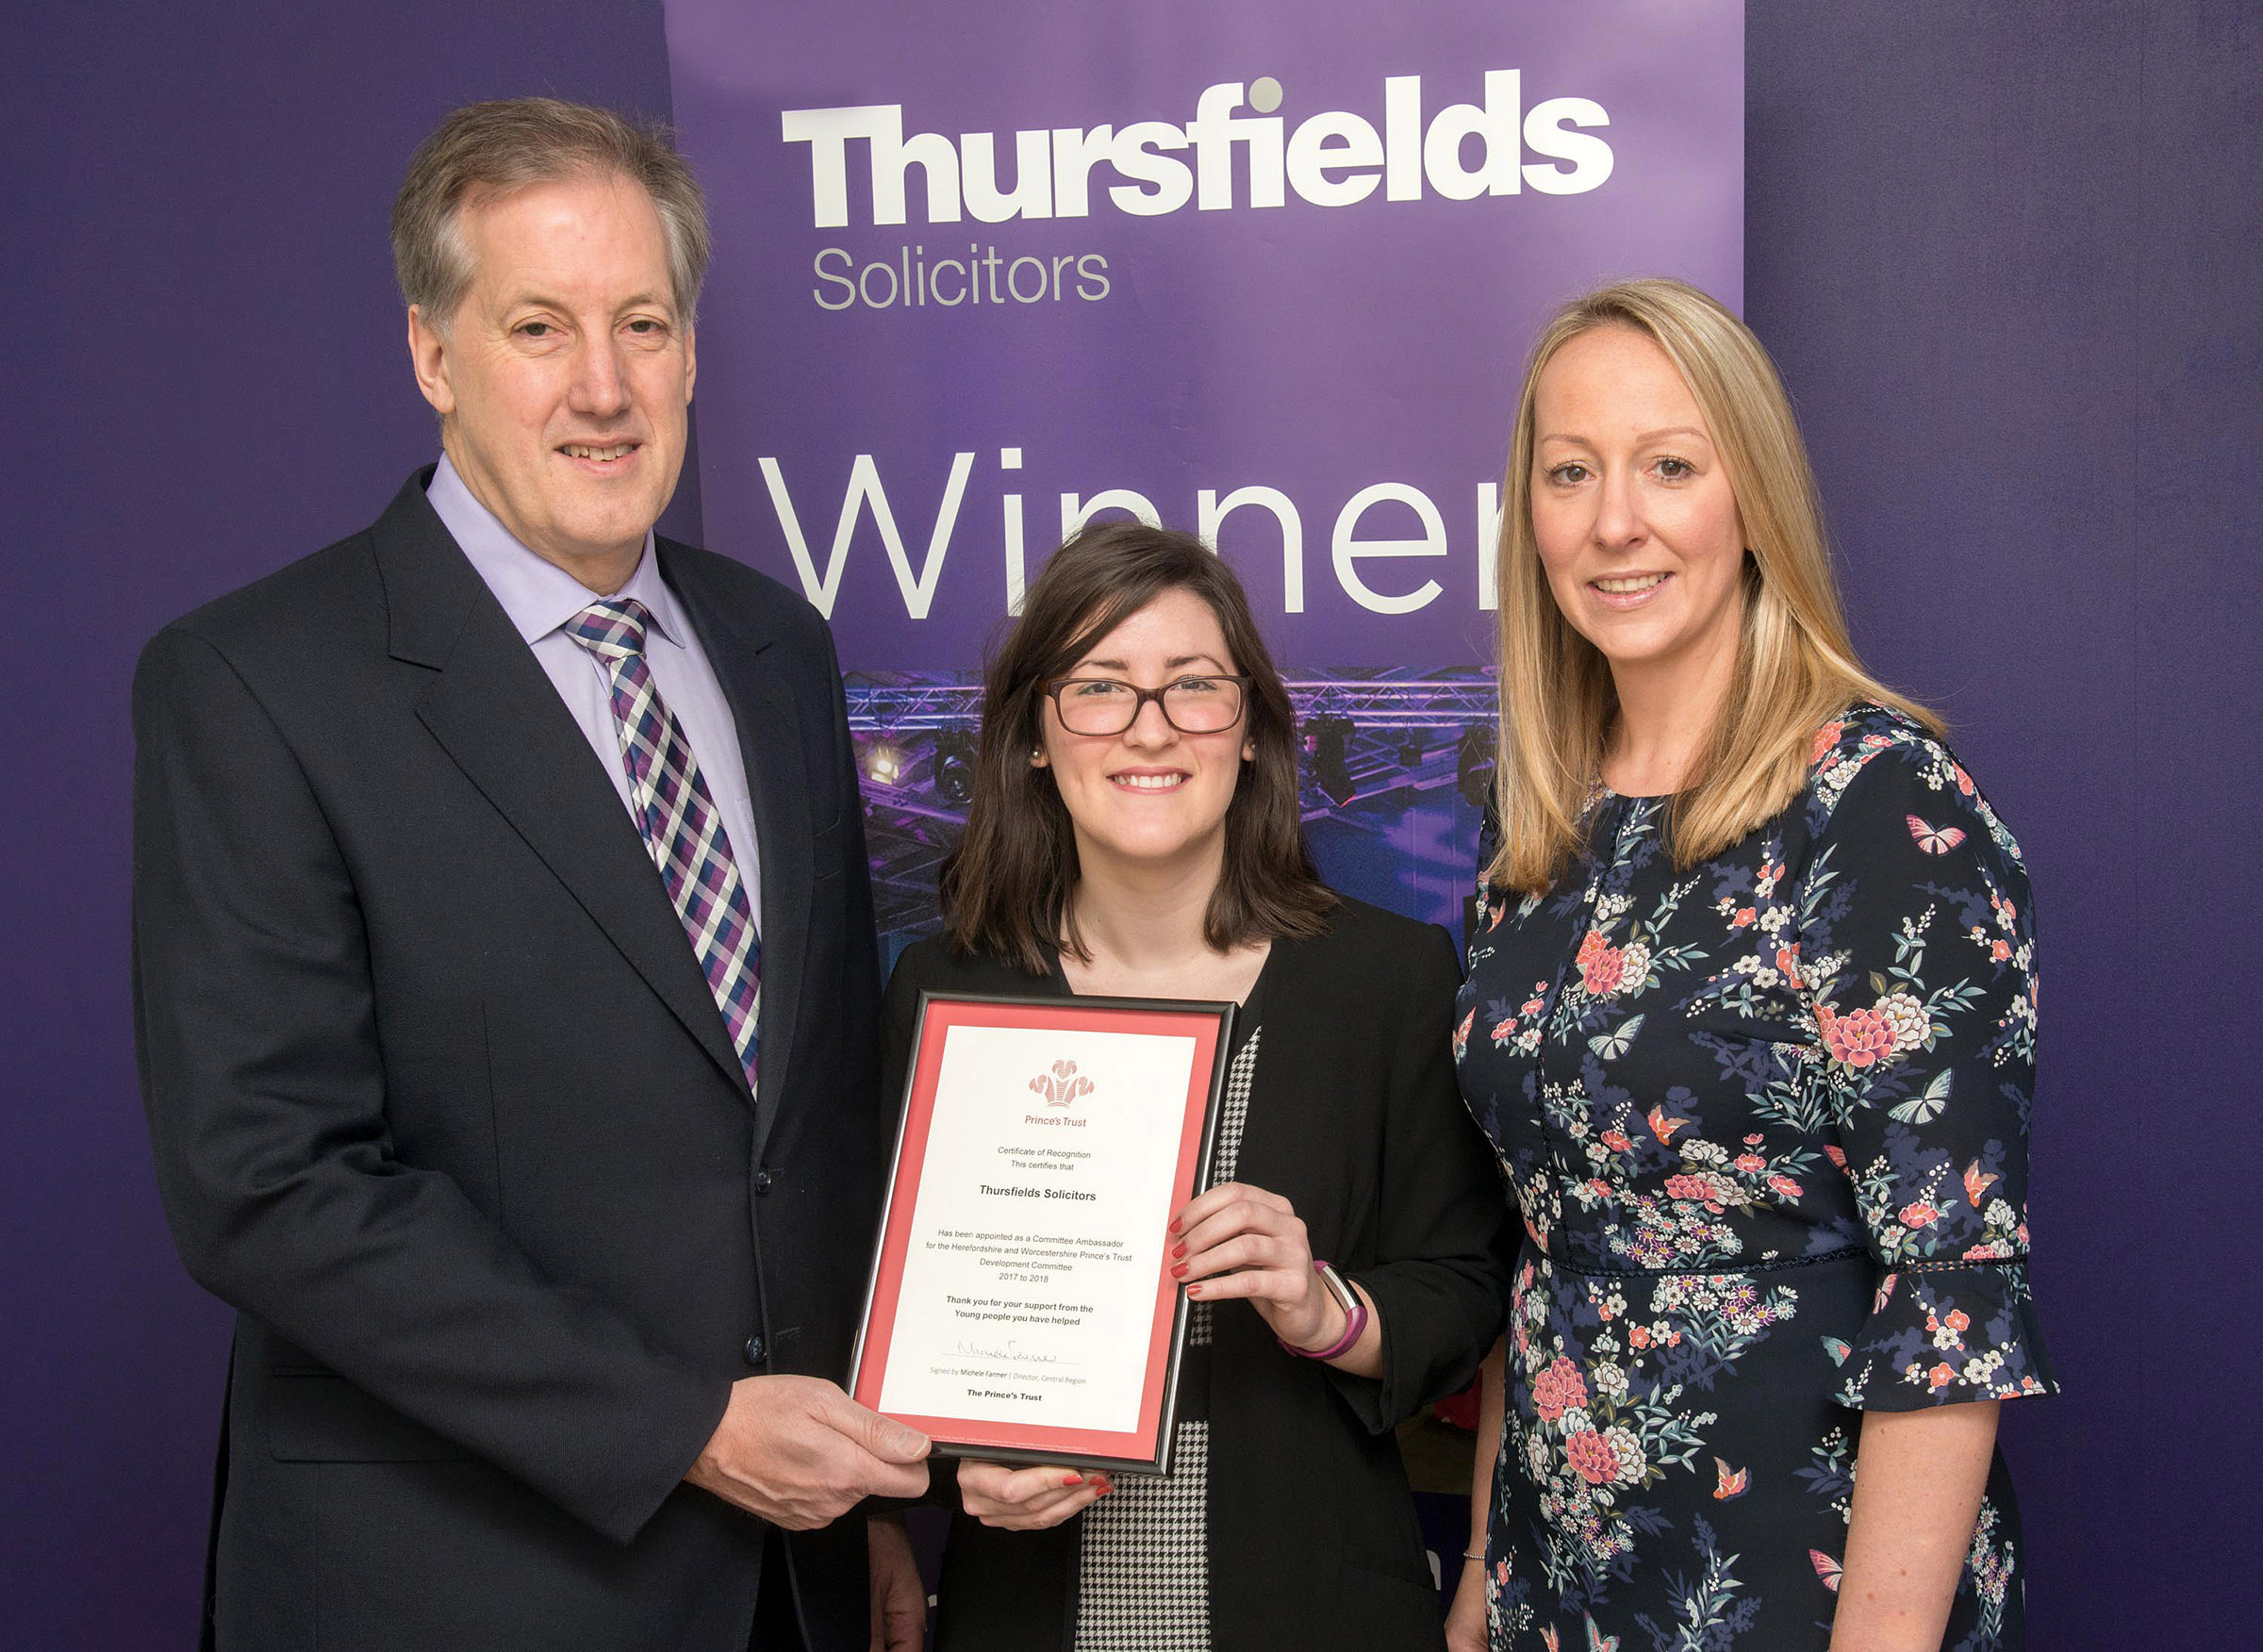 Thursfields Solicitors Winners Princes Trust